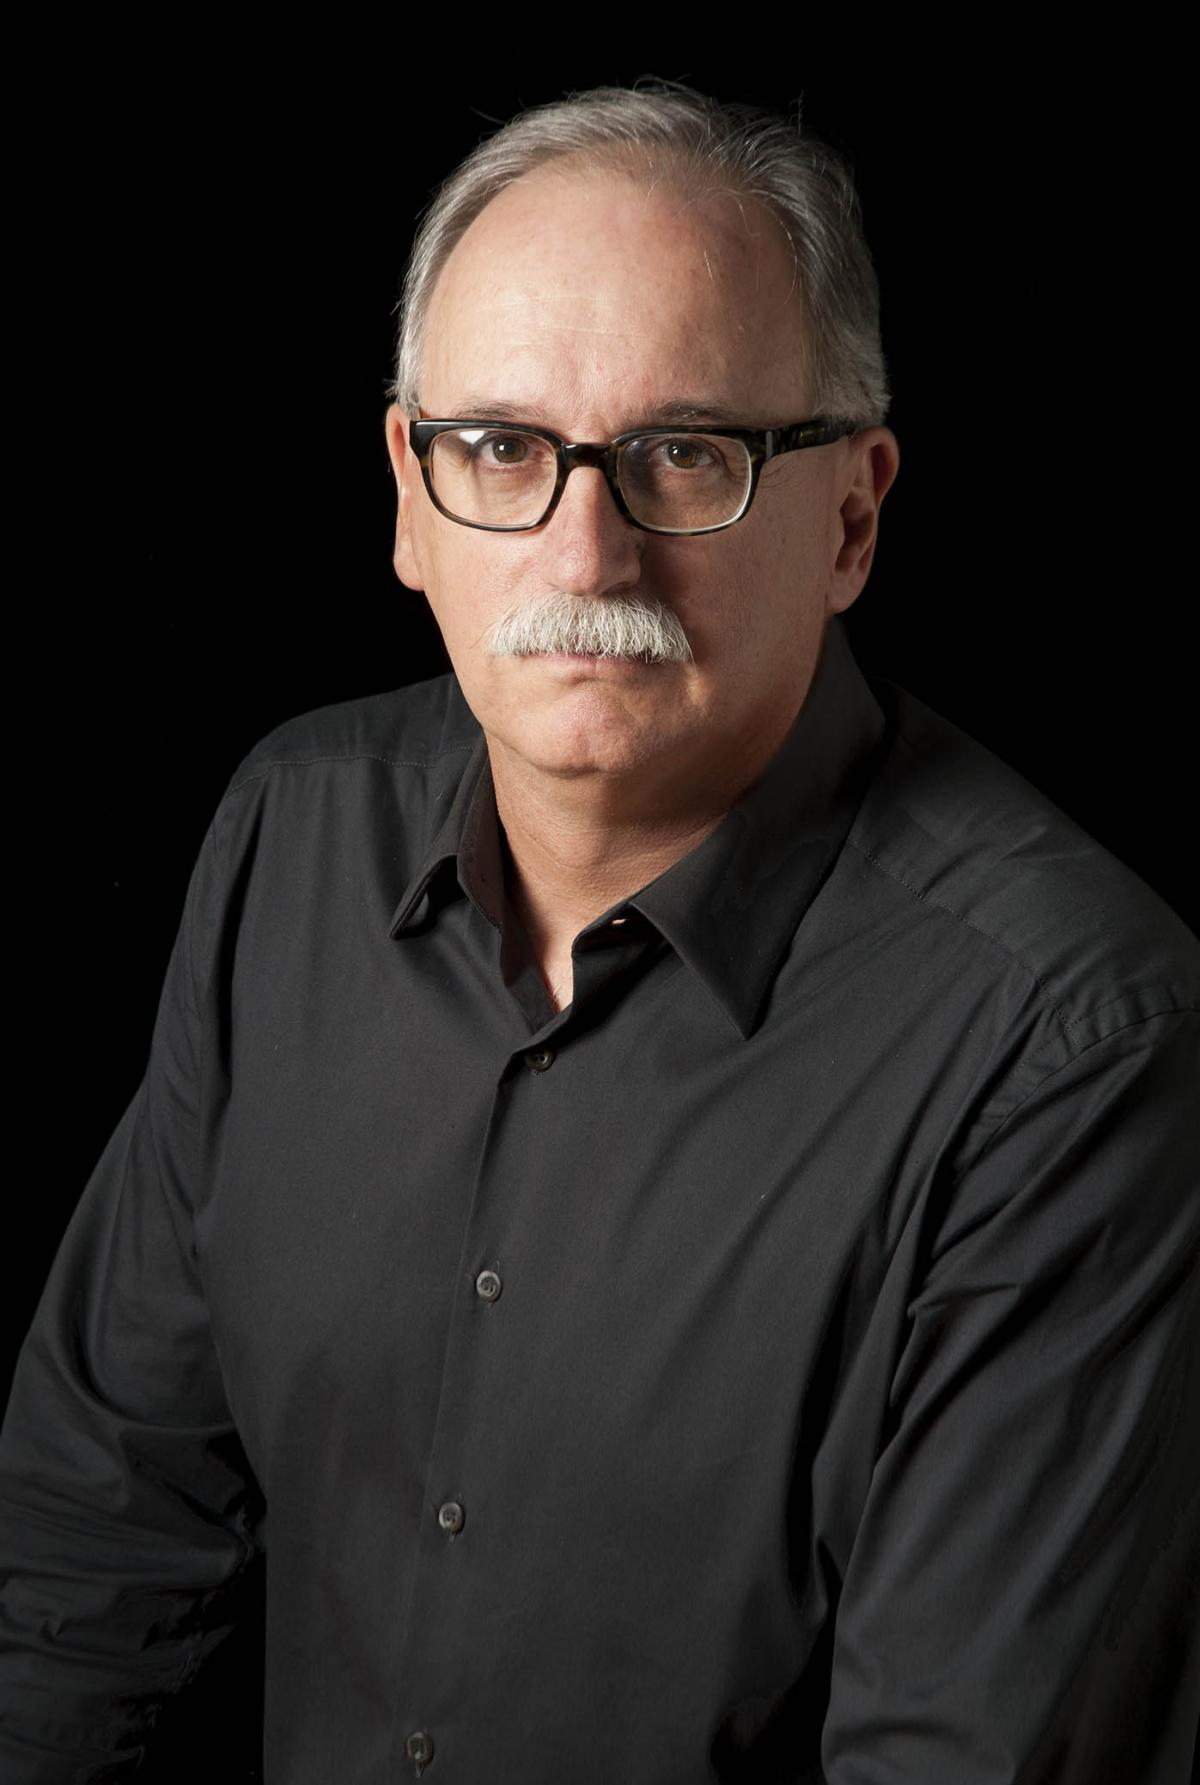 Jim Shepard has written six other novels and four story collections, including Like You'd Understand, Anyway, a National Book Award finalist.